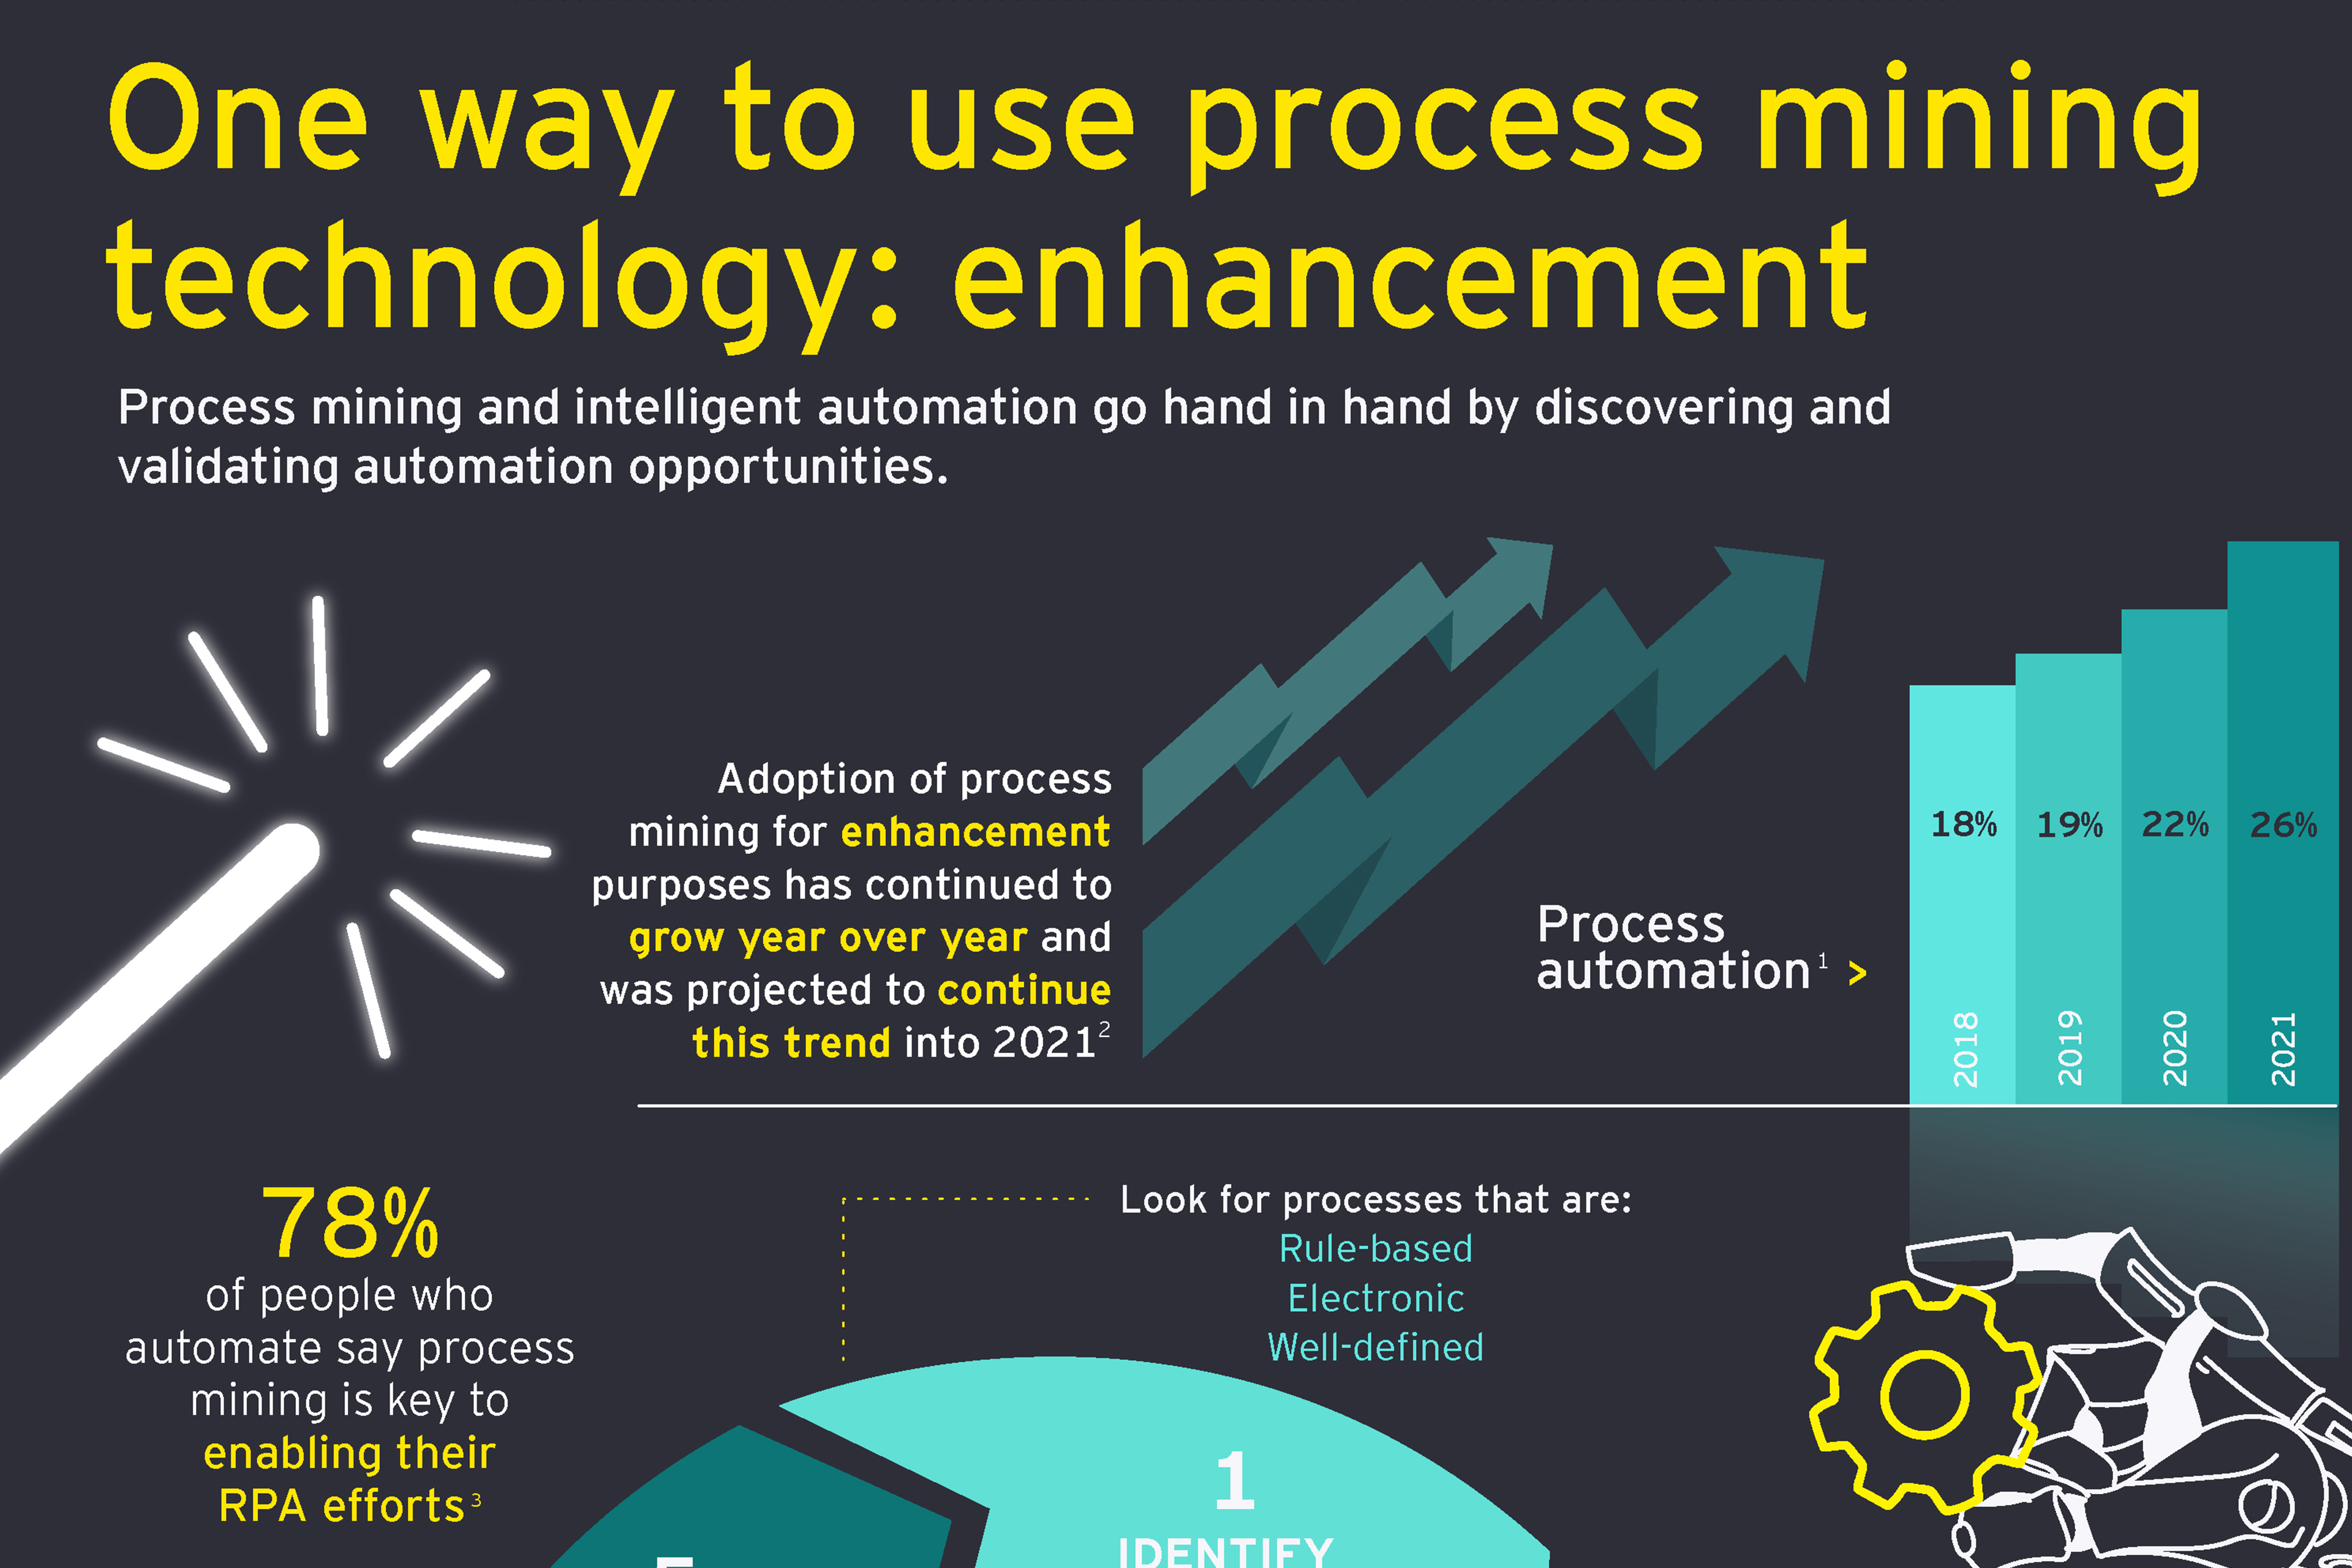 One way to use process mining technology: enhancement [infographic]